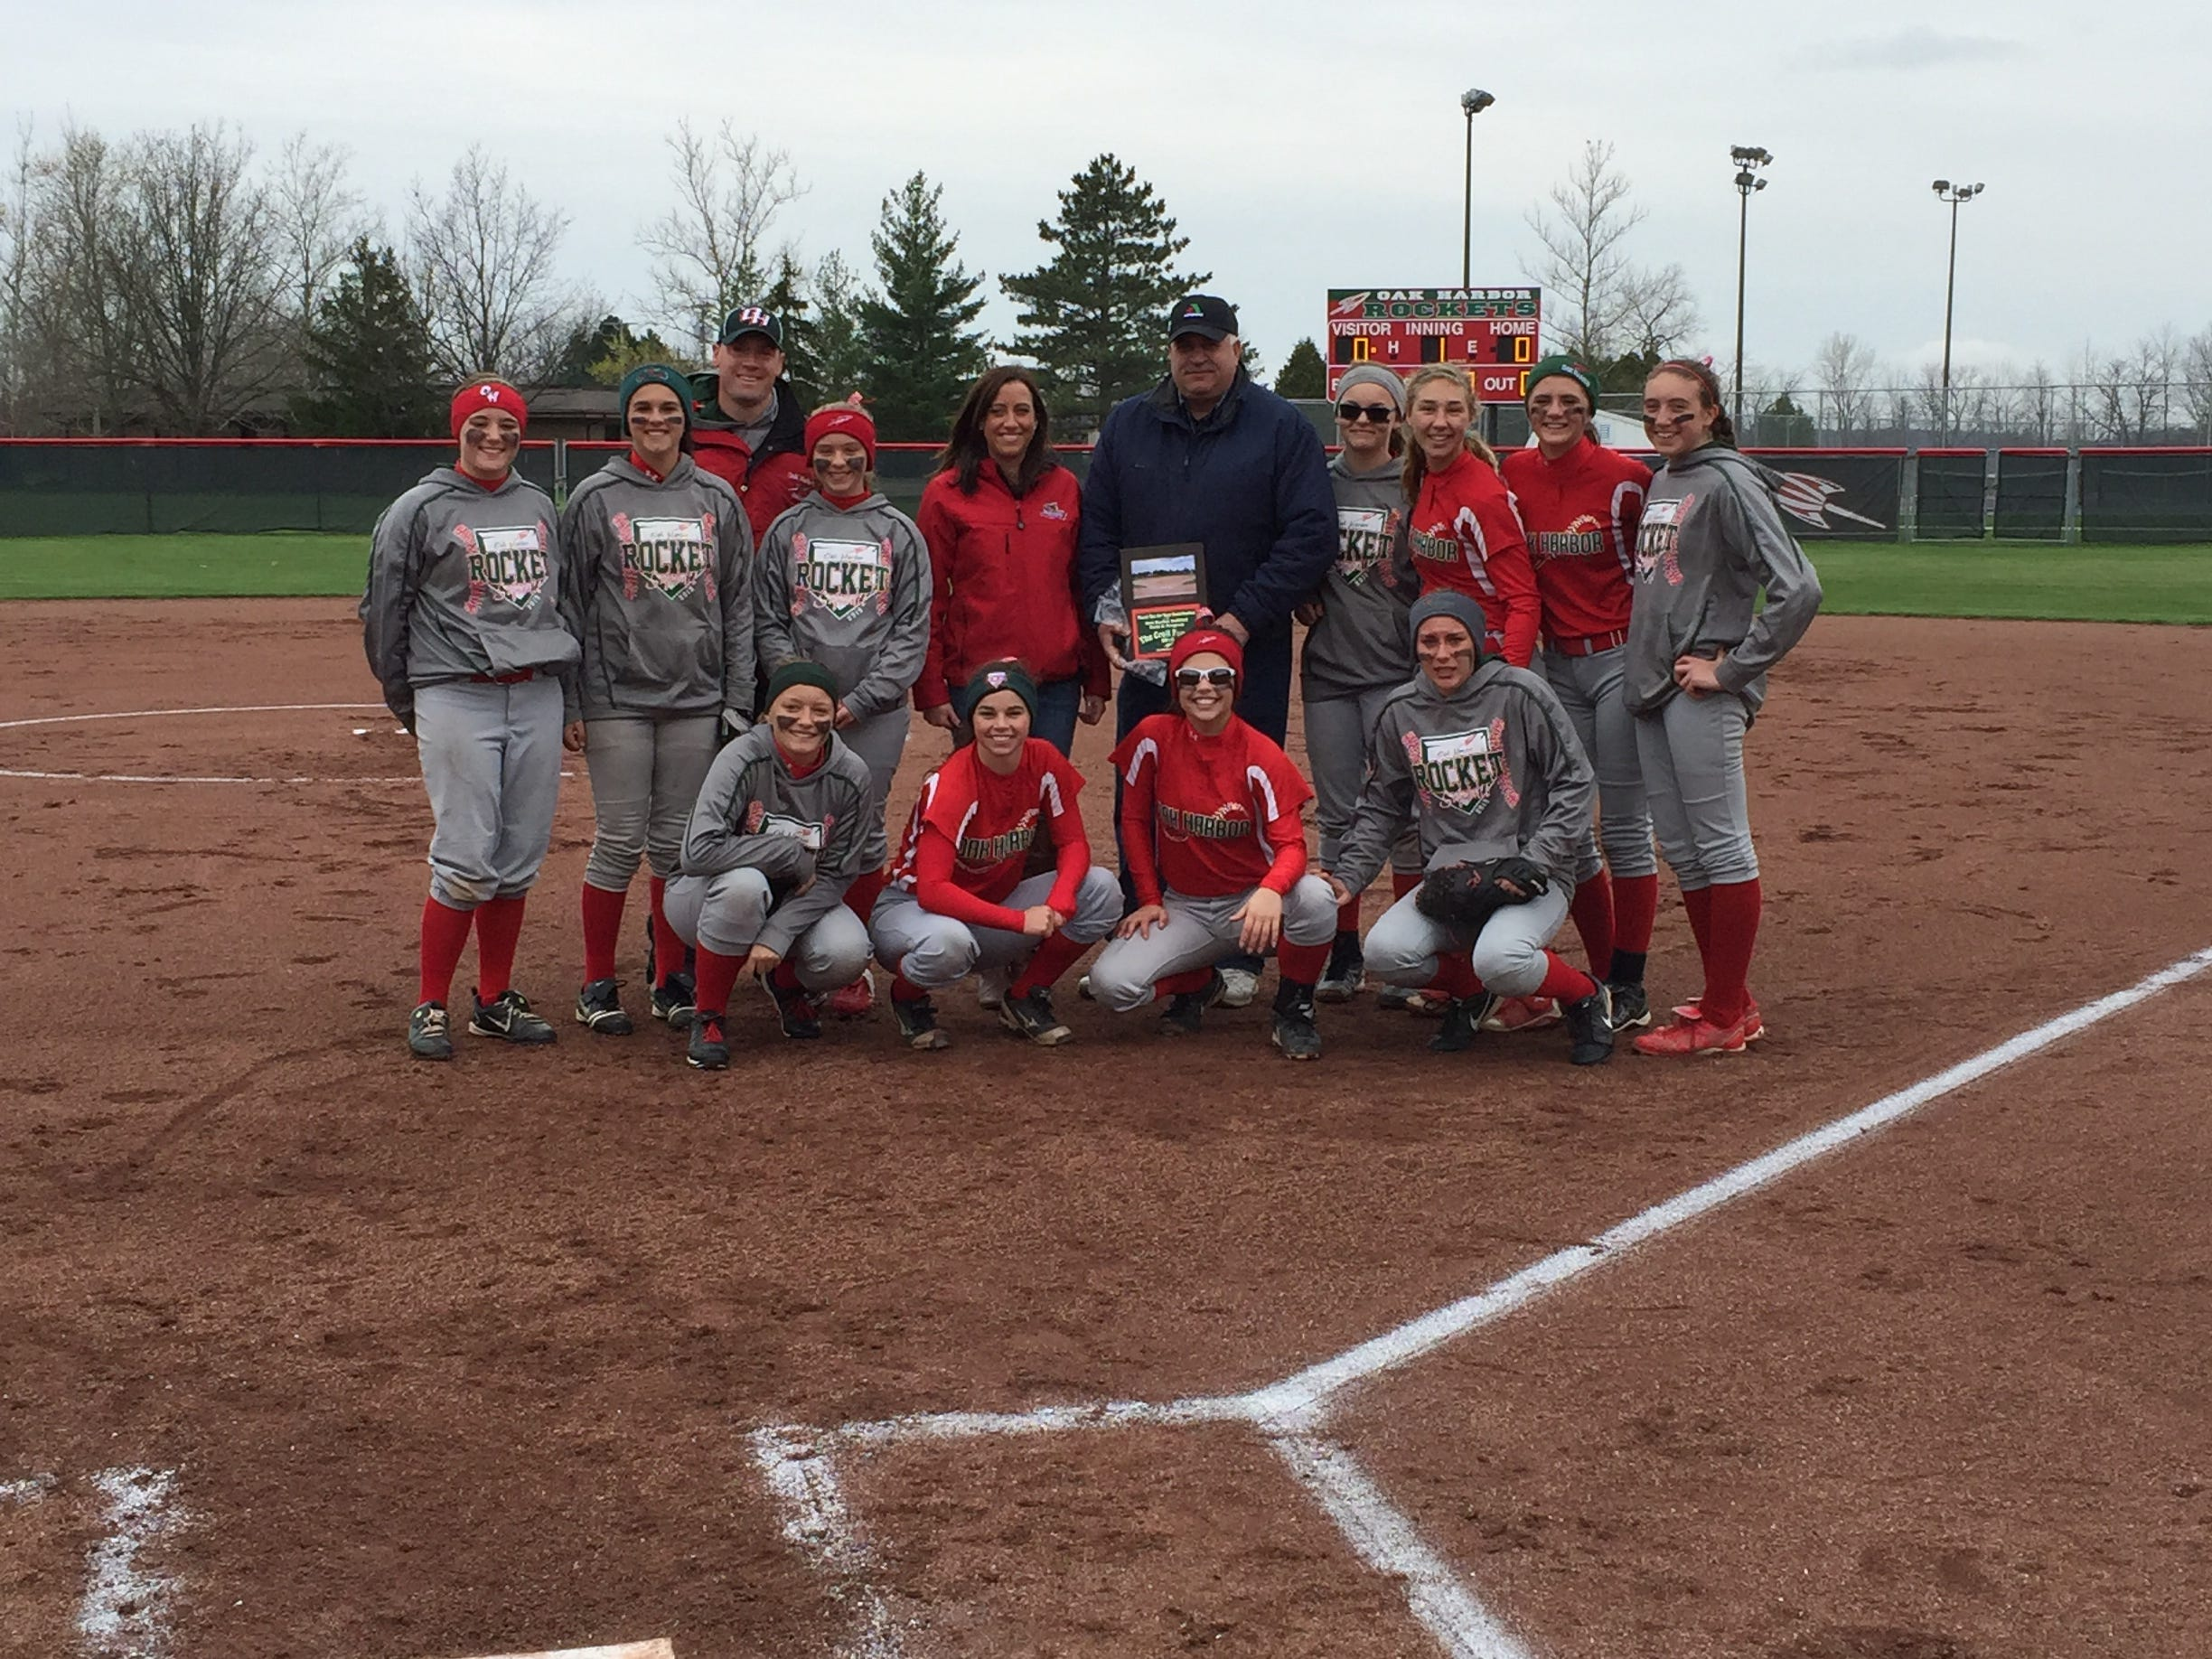 Oak Harbor's softball team with E.J. Croll (pictured at center).